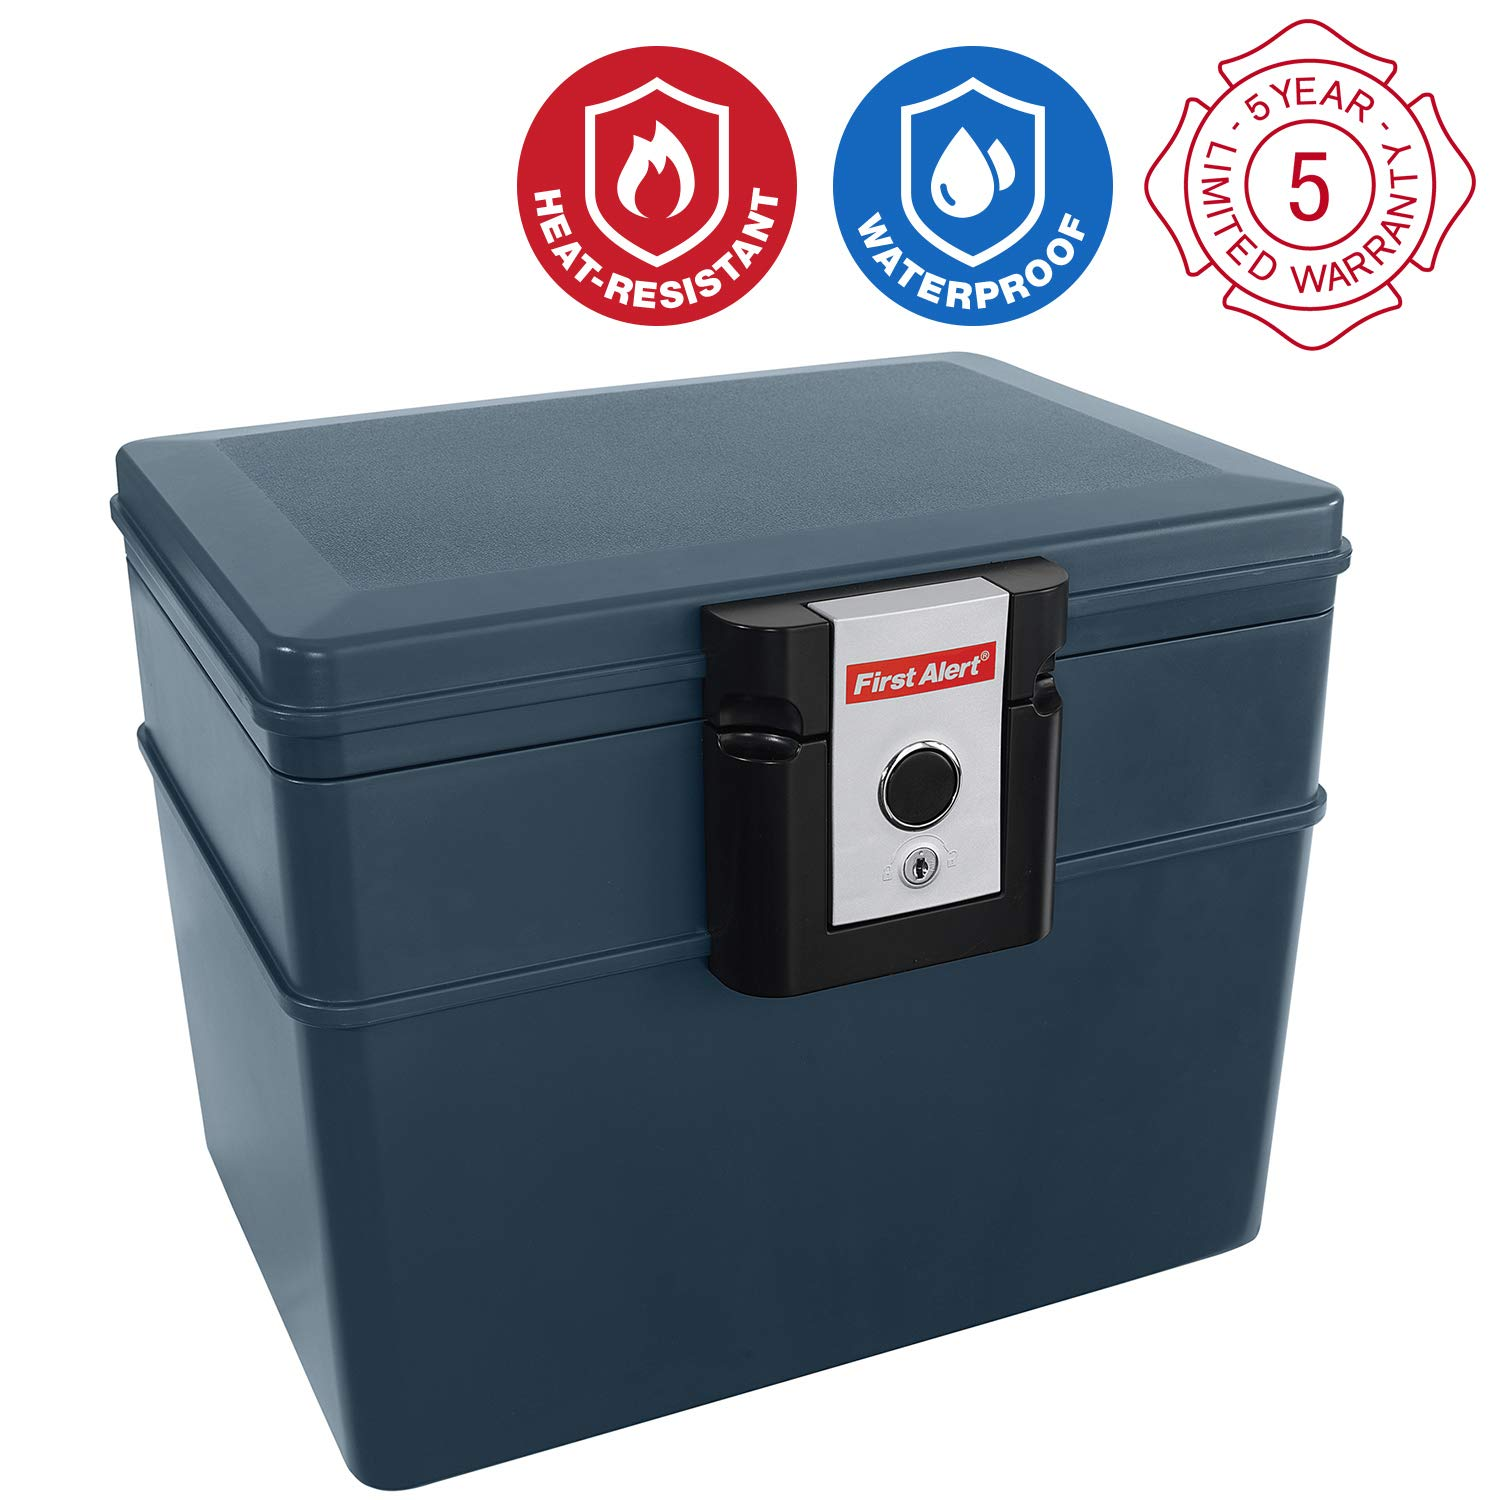 First Alert 2037F Water and Fire Protector File Chest, 0.62 Cubic Feet by First Alert